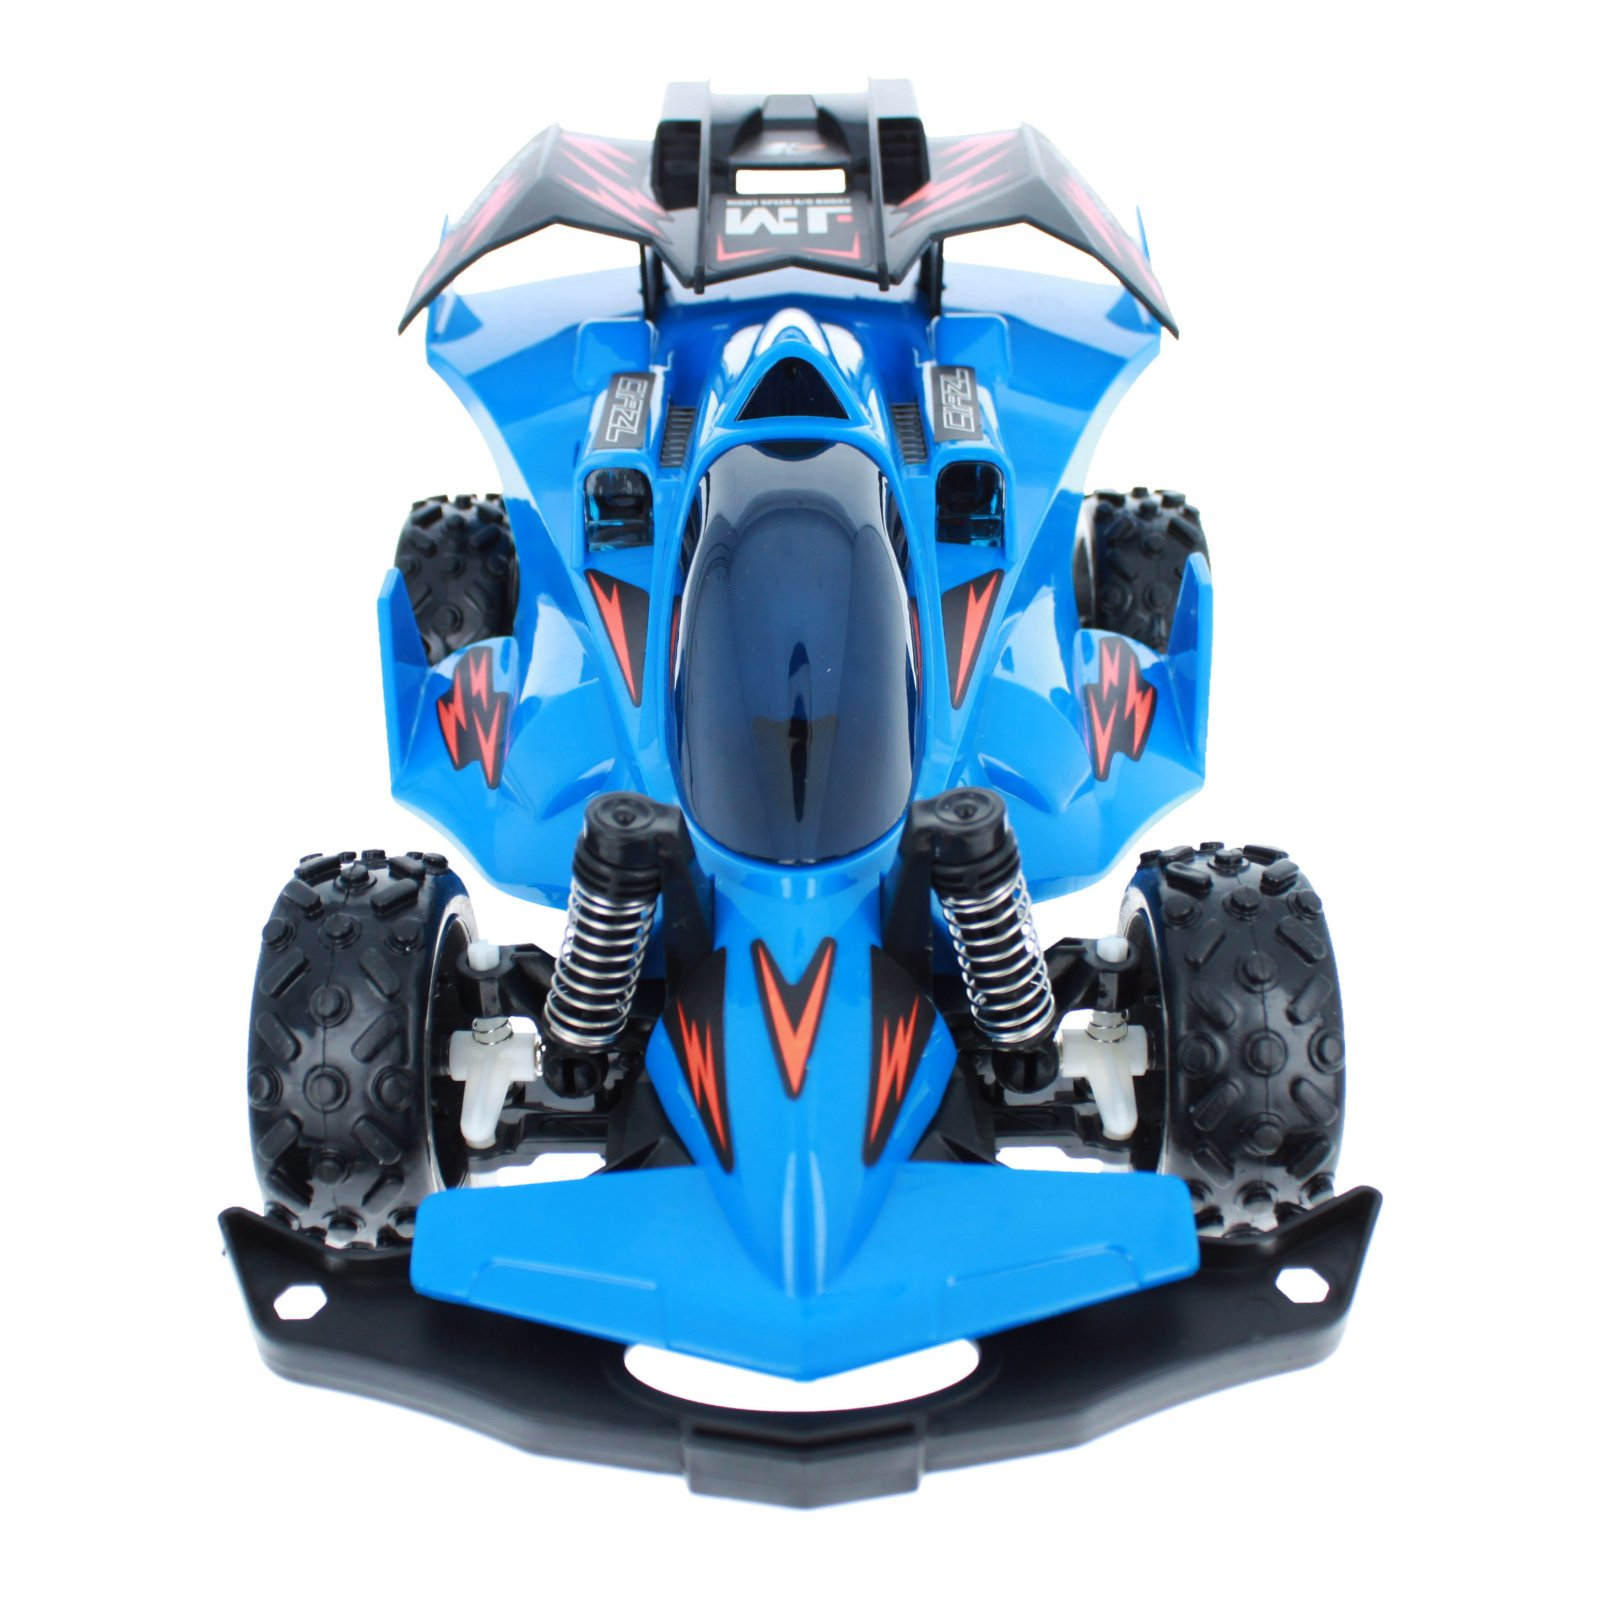 High Speed R/C Dune Buggy Vehicle - Blue